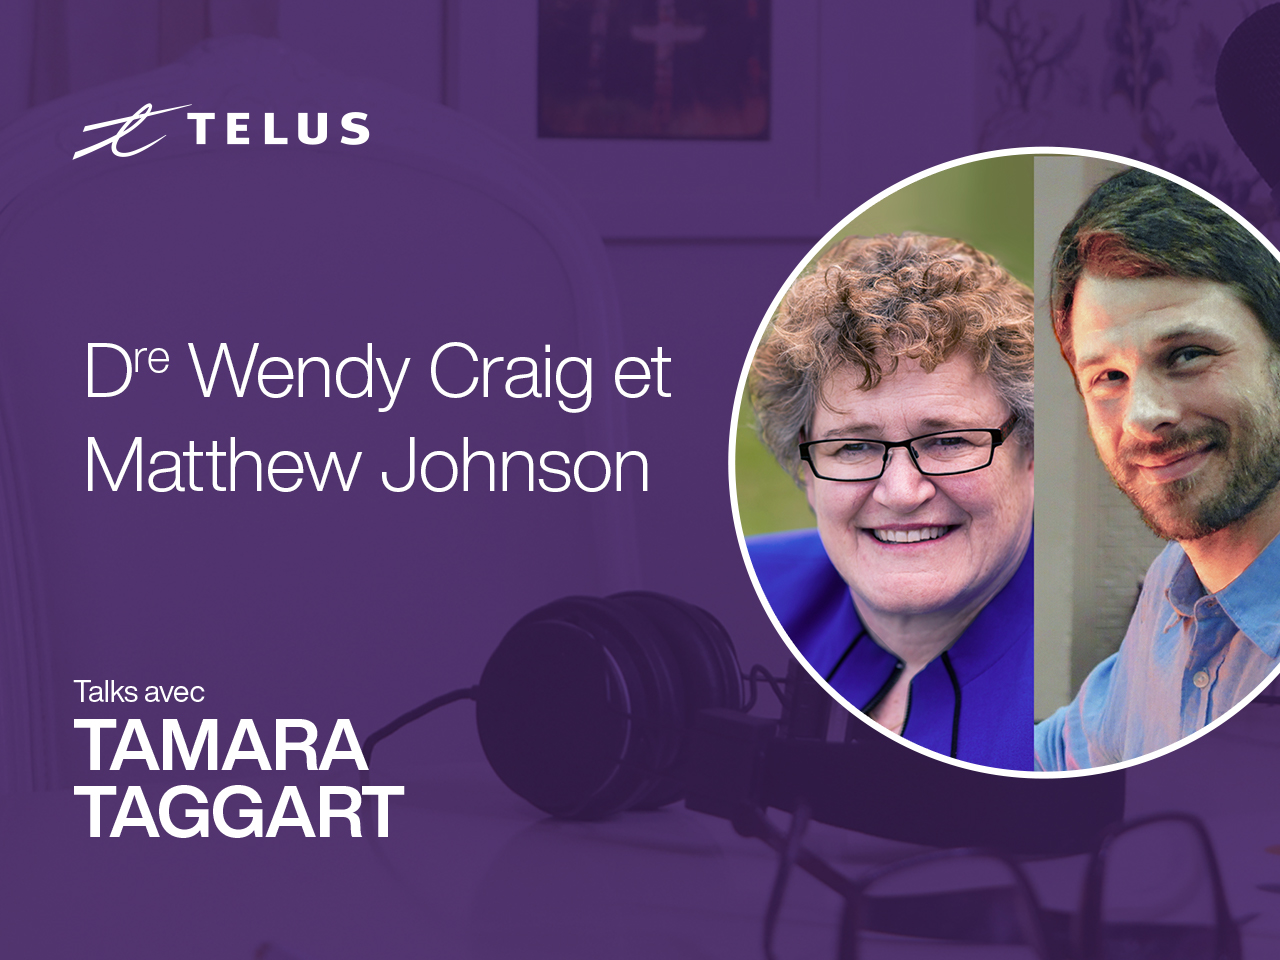 Dr. Wendy Craig, head of Psychology at Queen's university, and Matthew Johnson, Director of Education at MediaSmarts